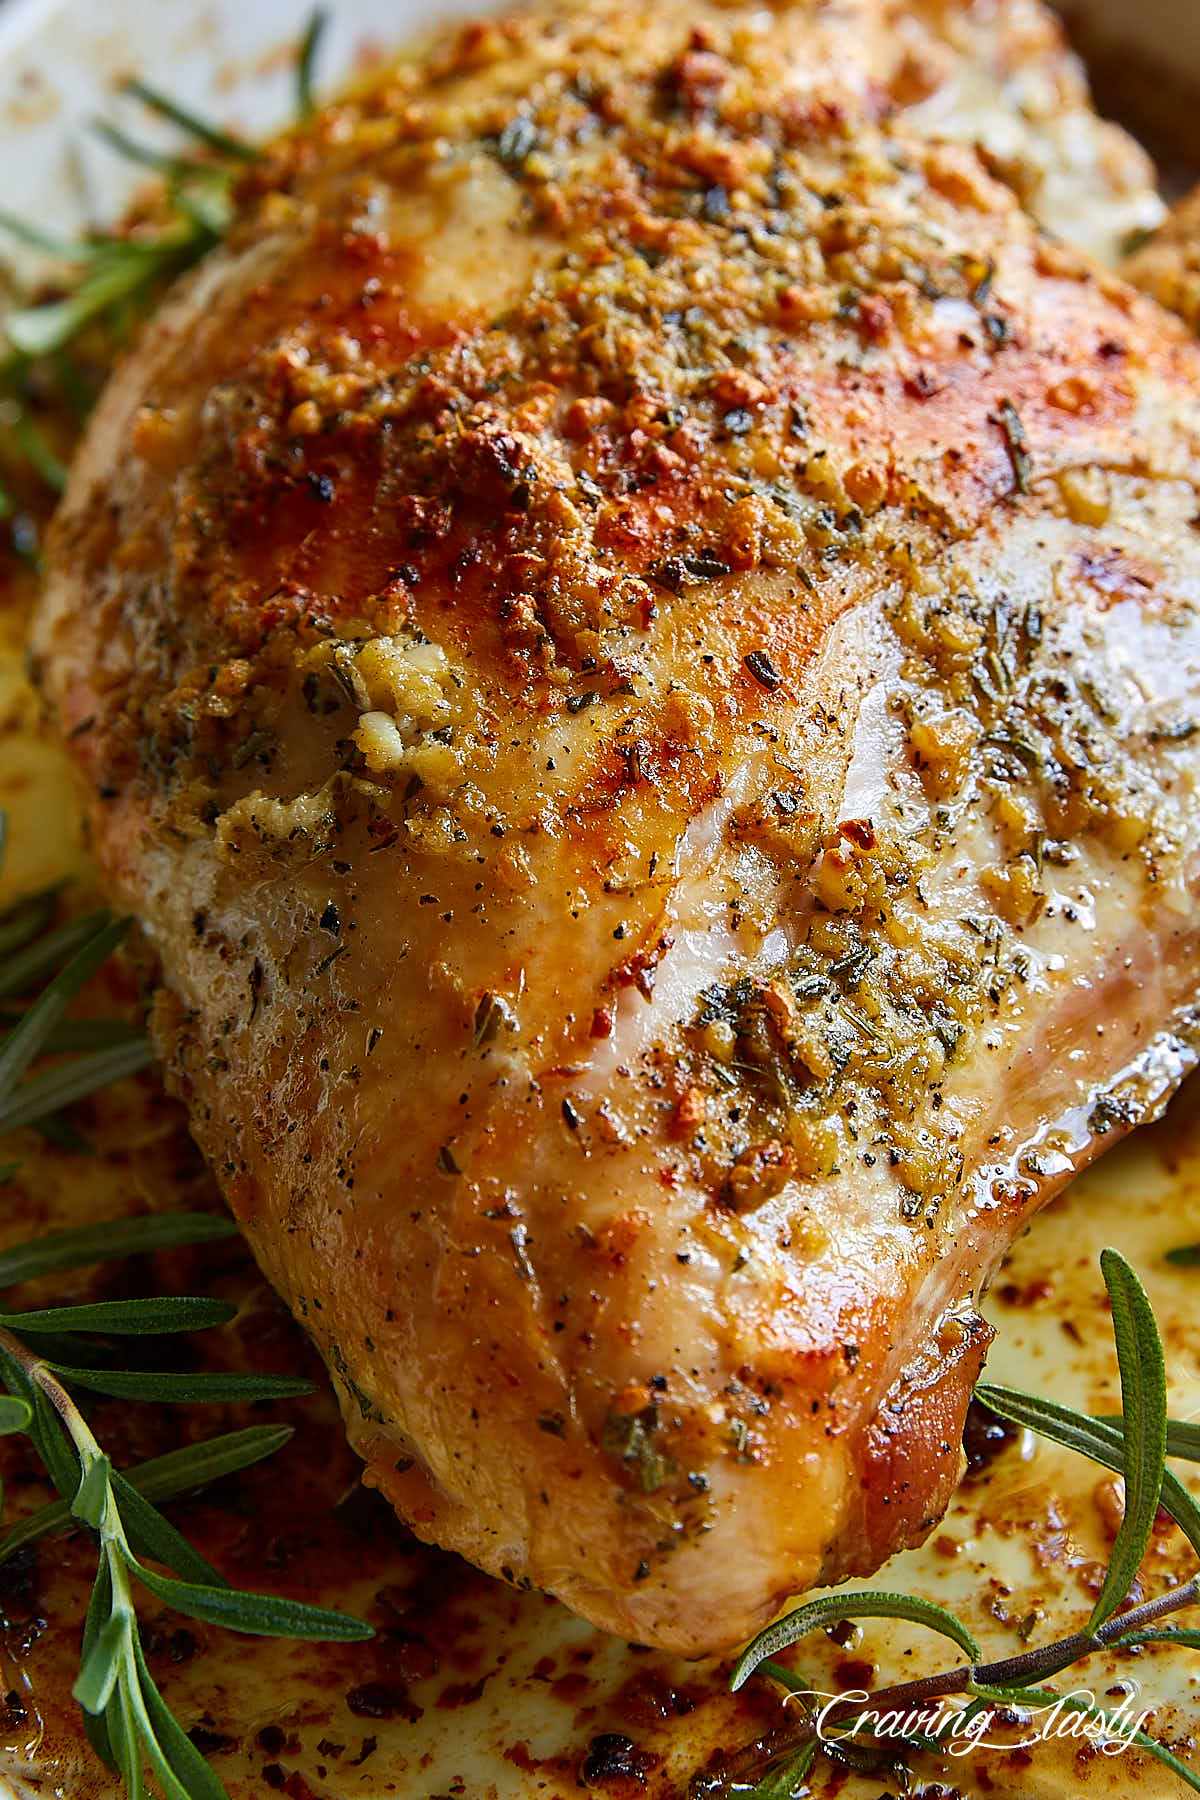 Close up of a golden-brown turkey breast roast.